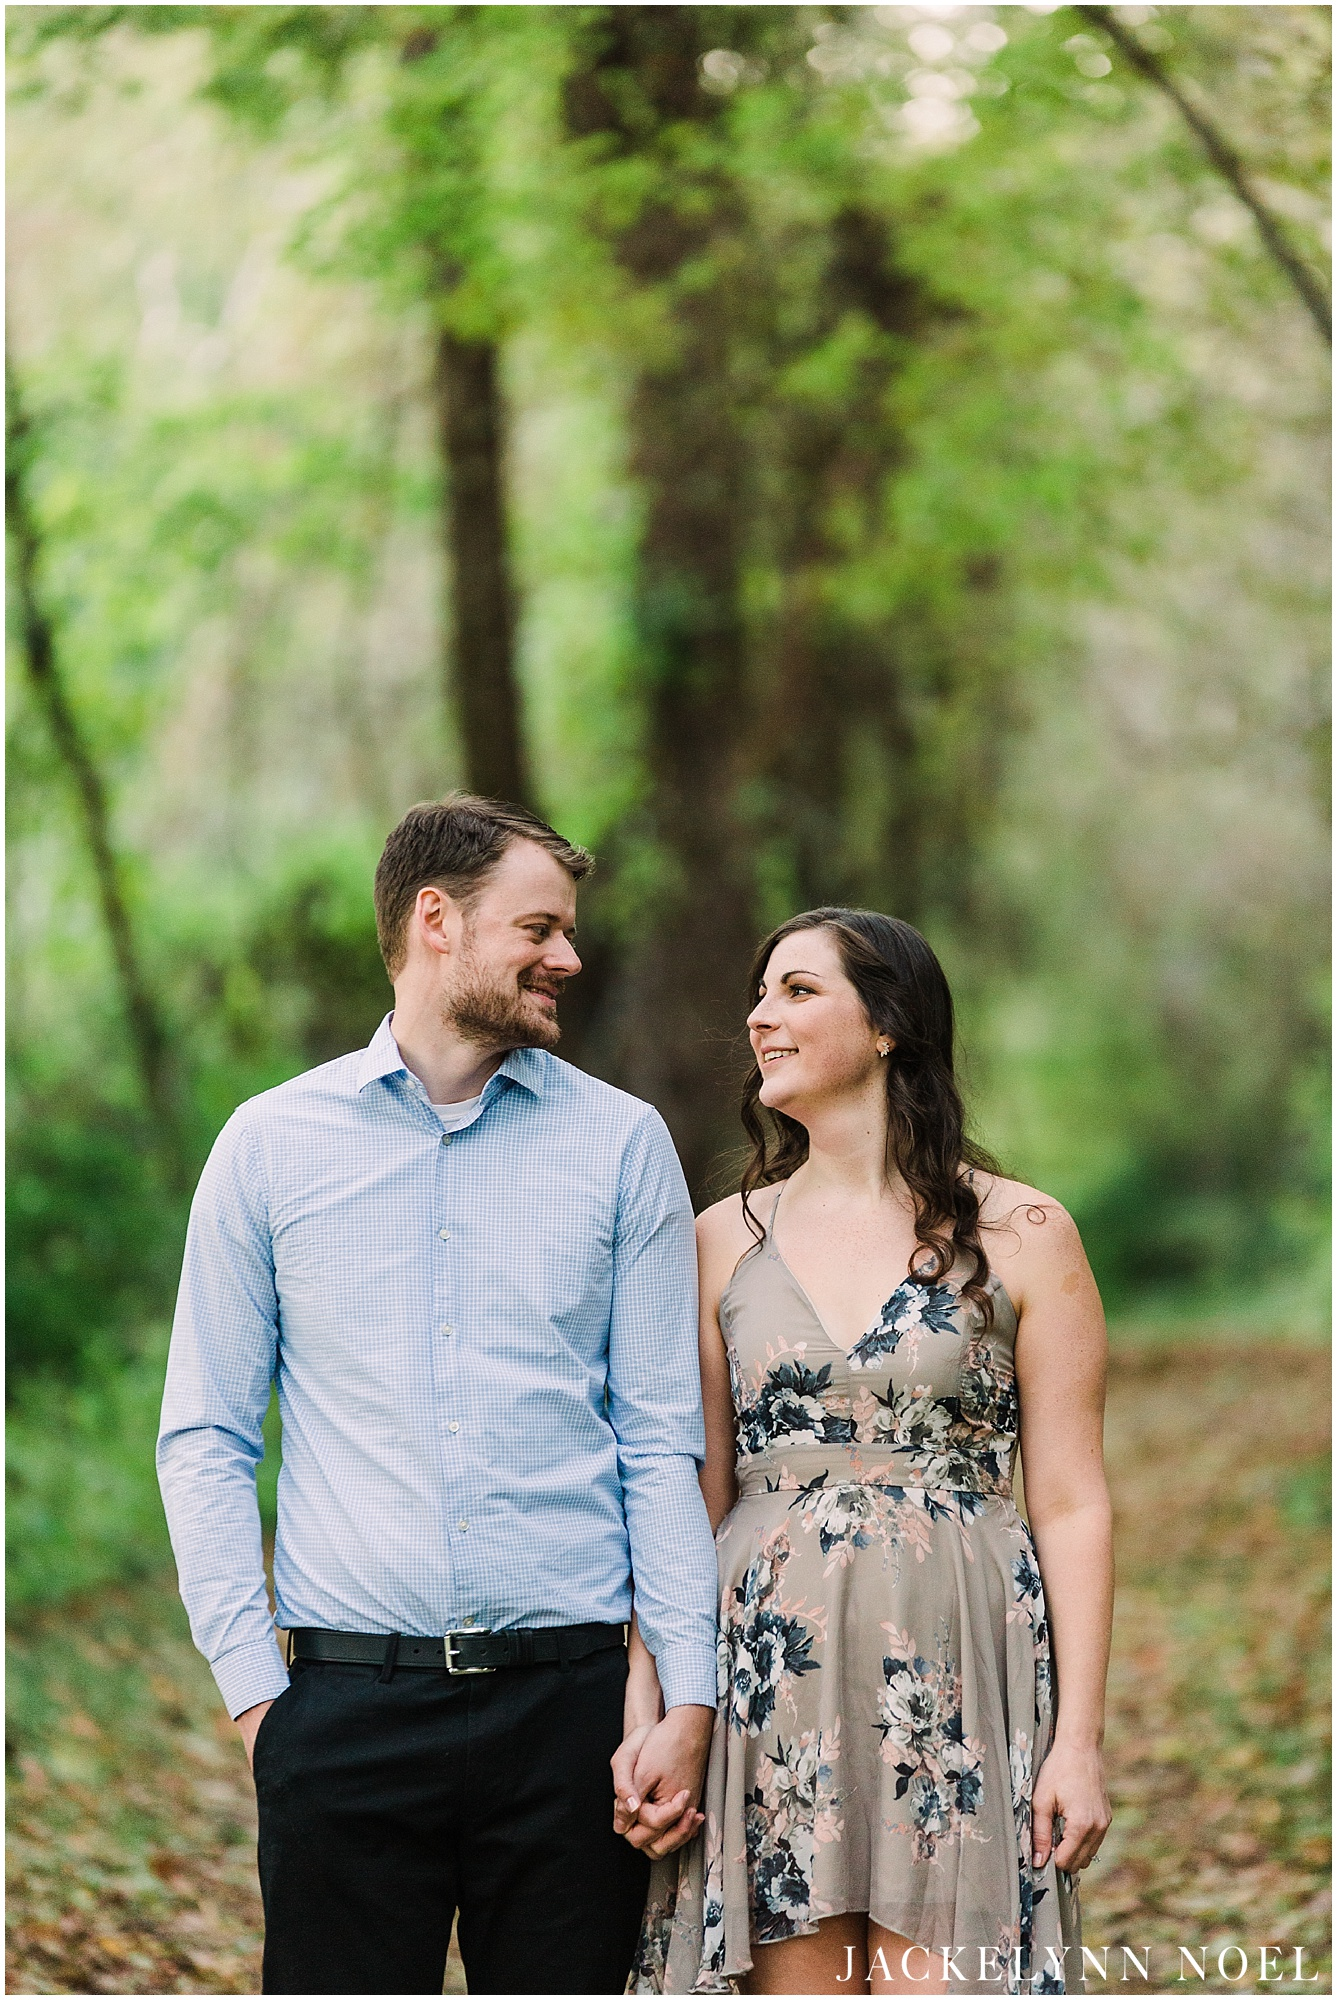 Danika & Joe engagement session at Fort Bell Fontaine by Jackelynn Noel Photography